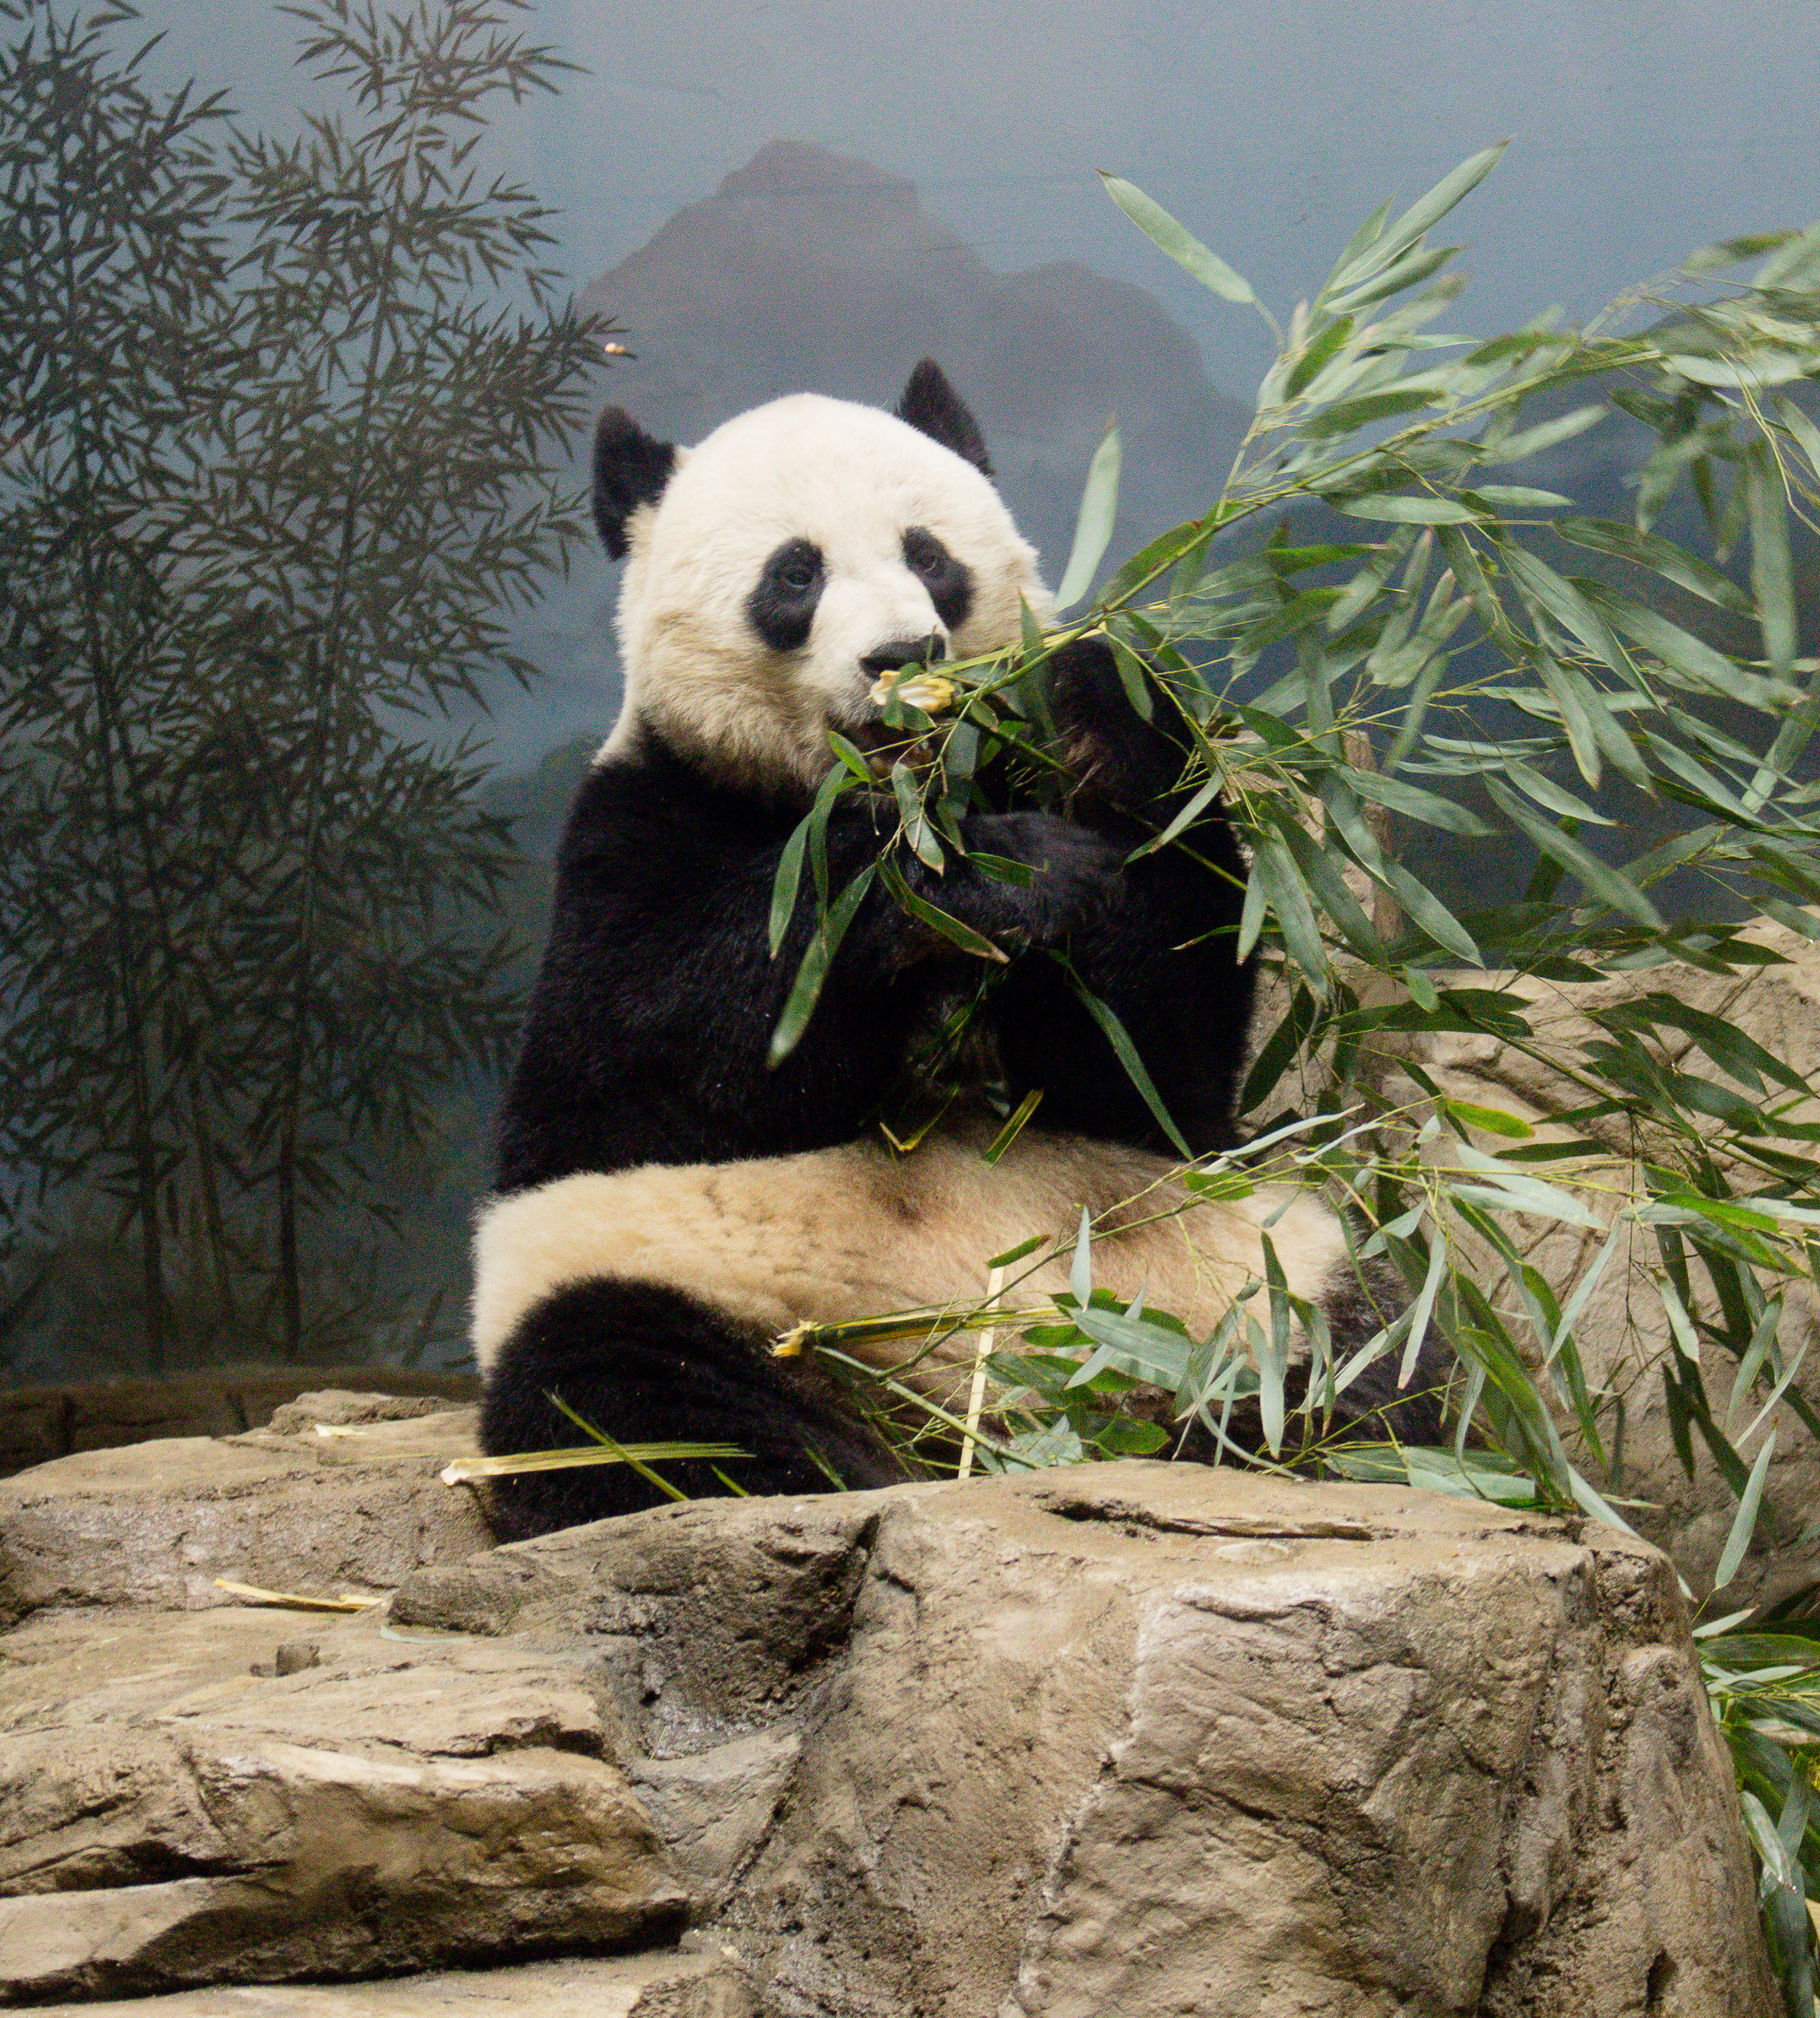 The National Zoo is one of my favorite museums in DC! Check my blog post for a few more favorites.